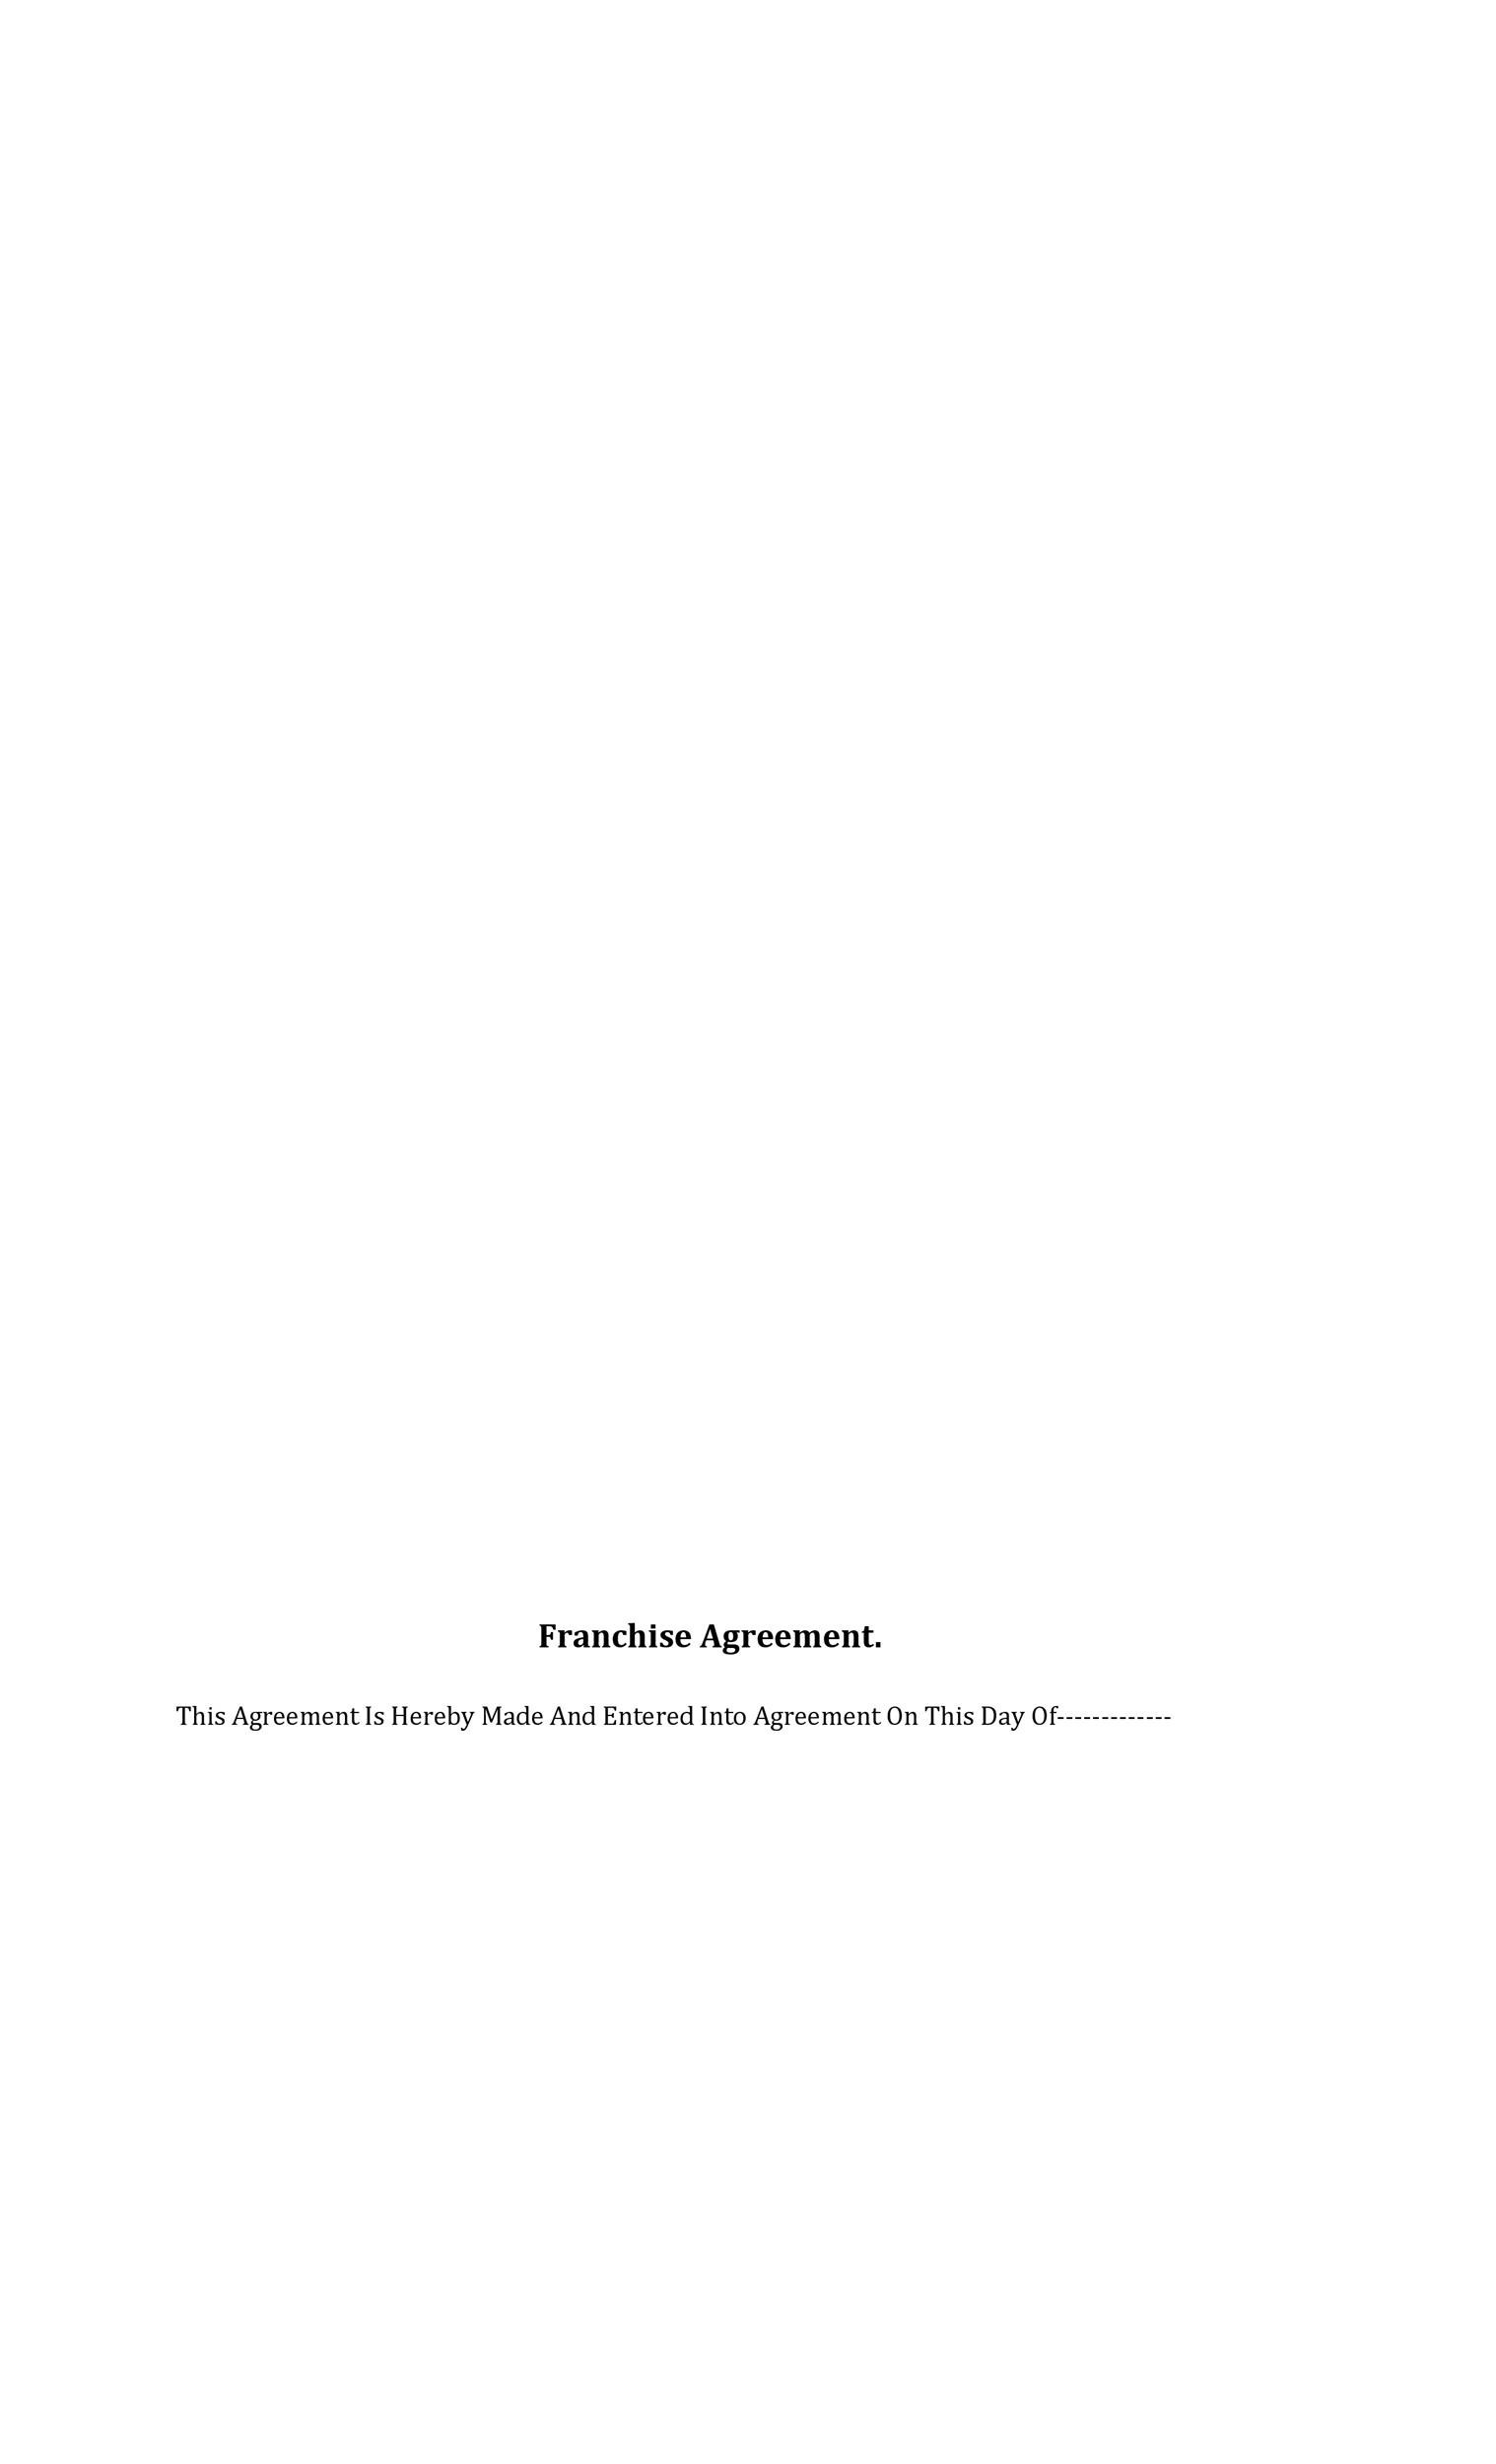 Free franchise agreement 36